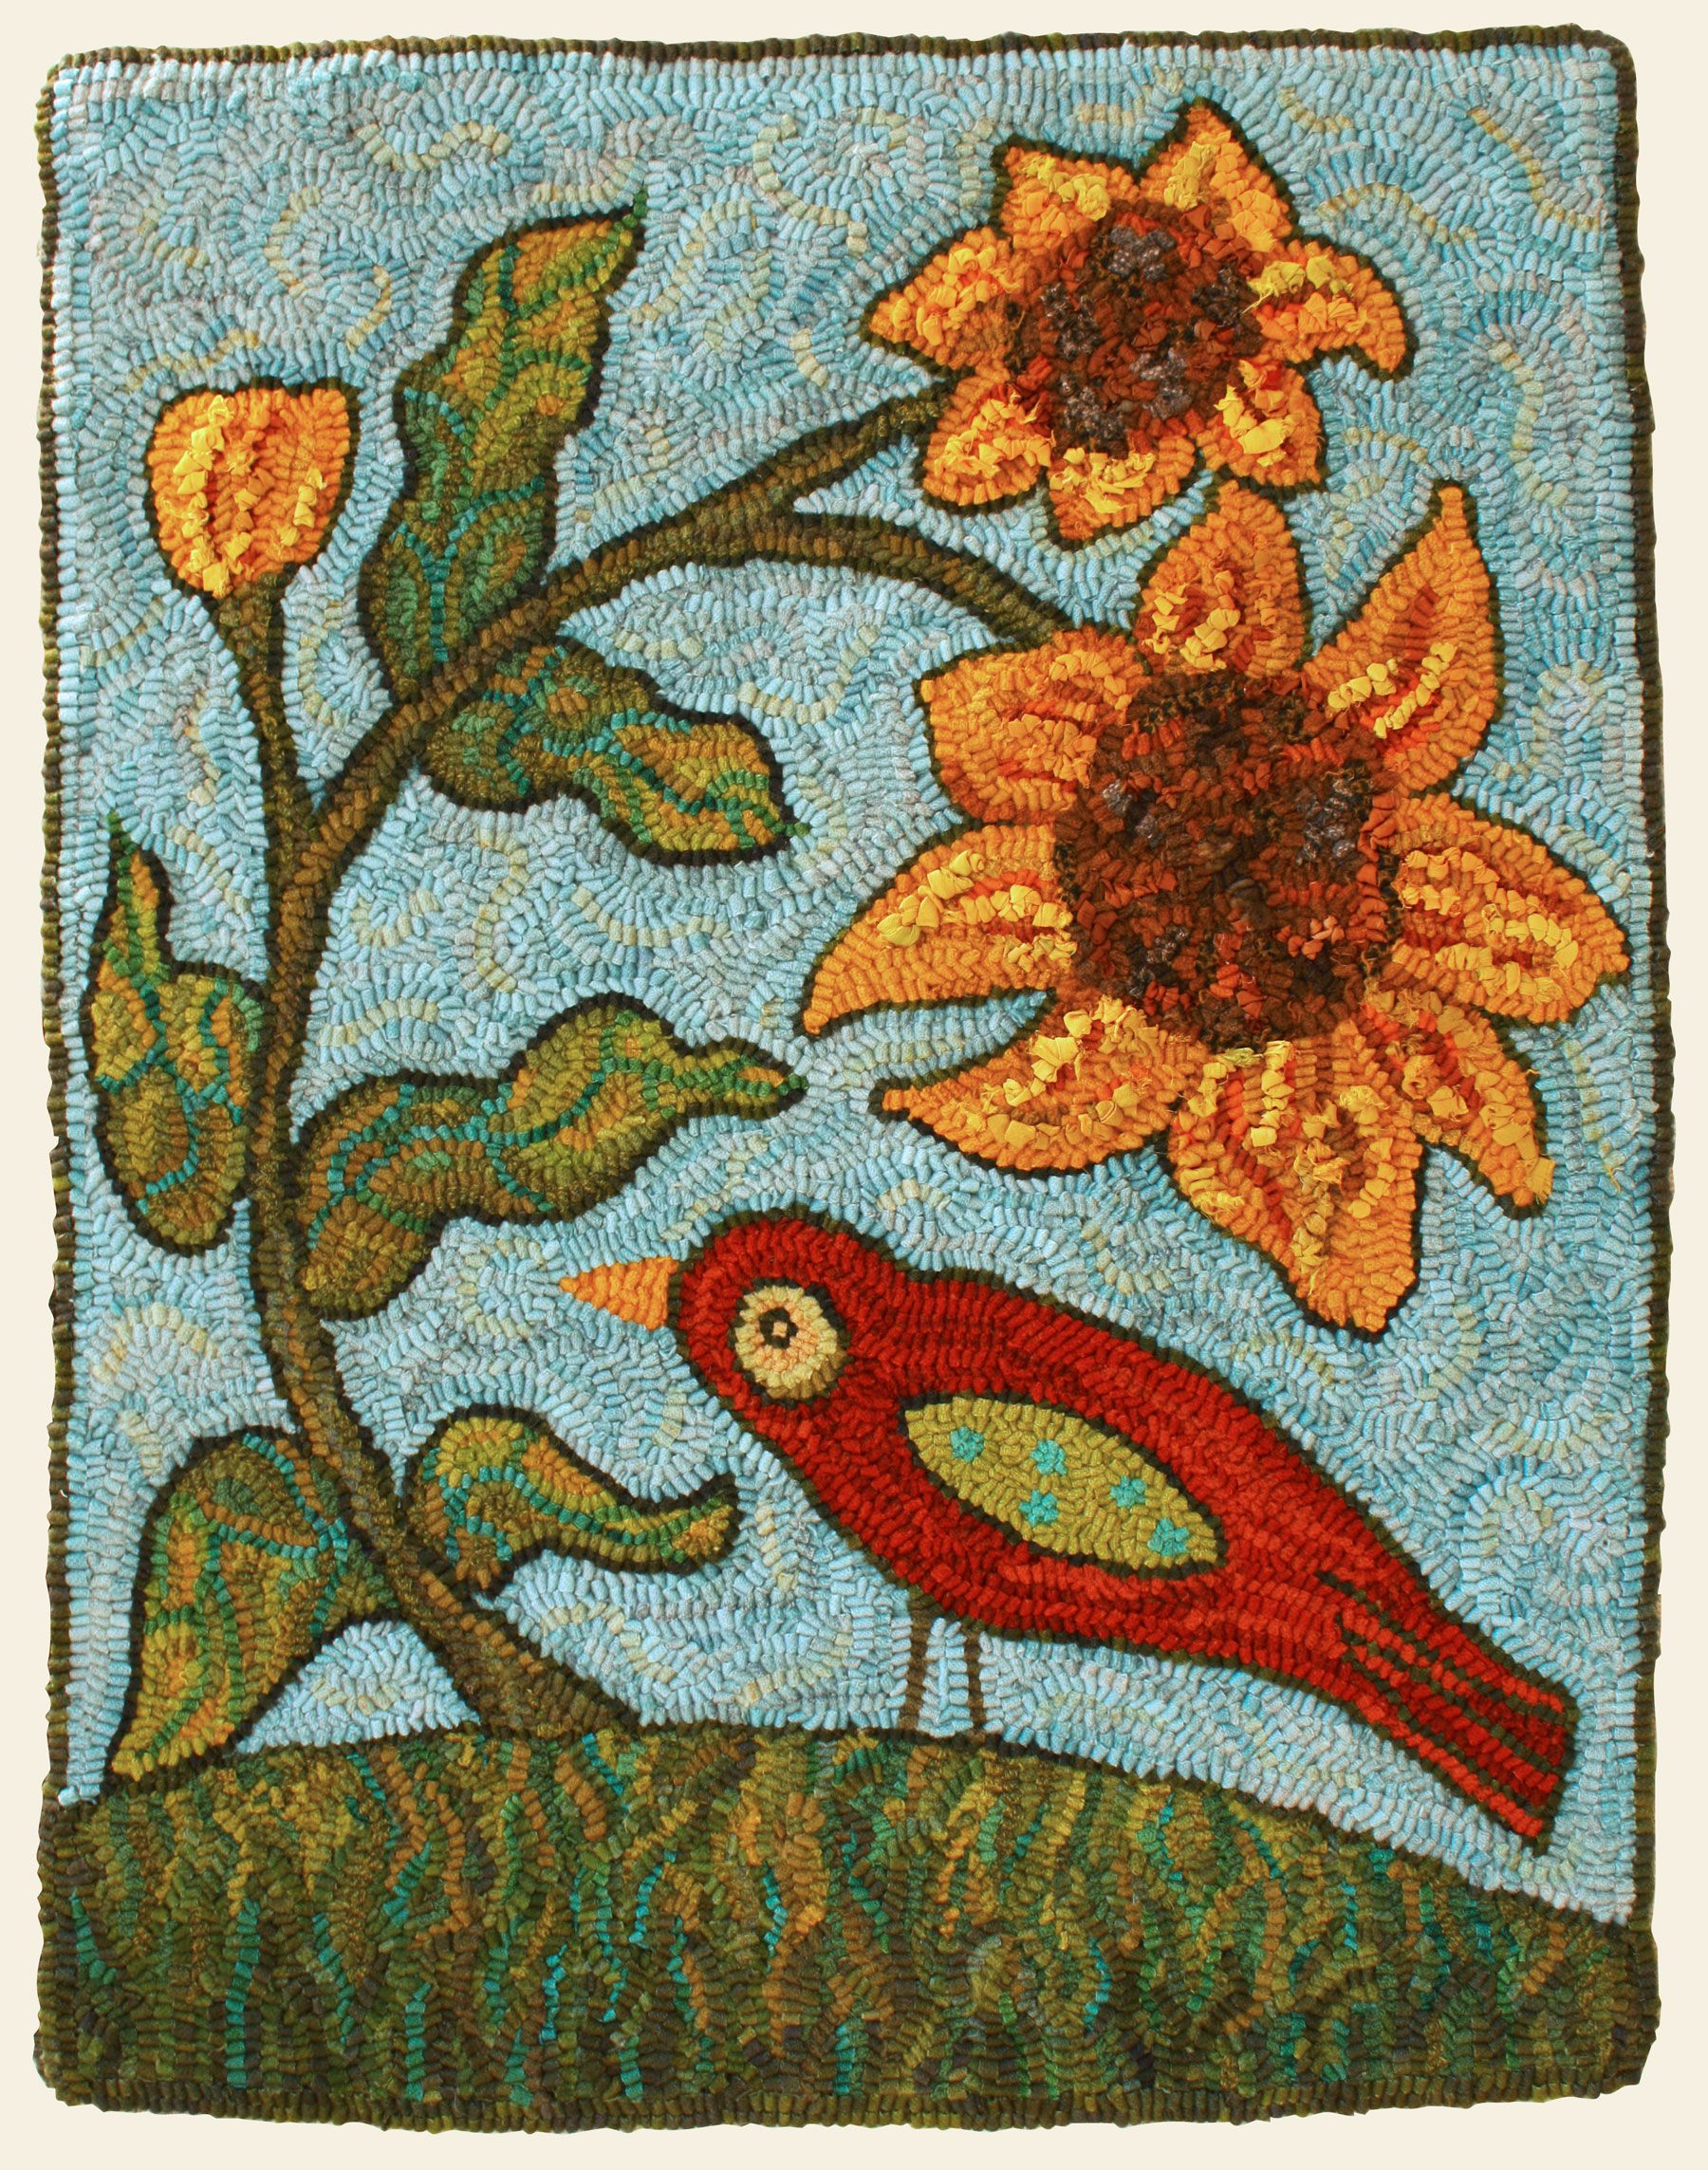 Rug Hooking Patterns Awesome Inspiration Ideas